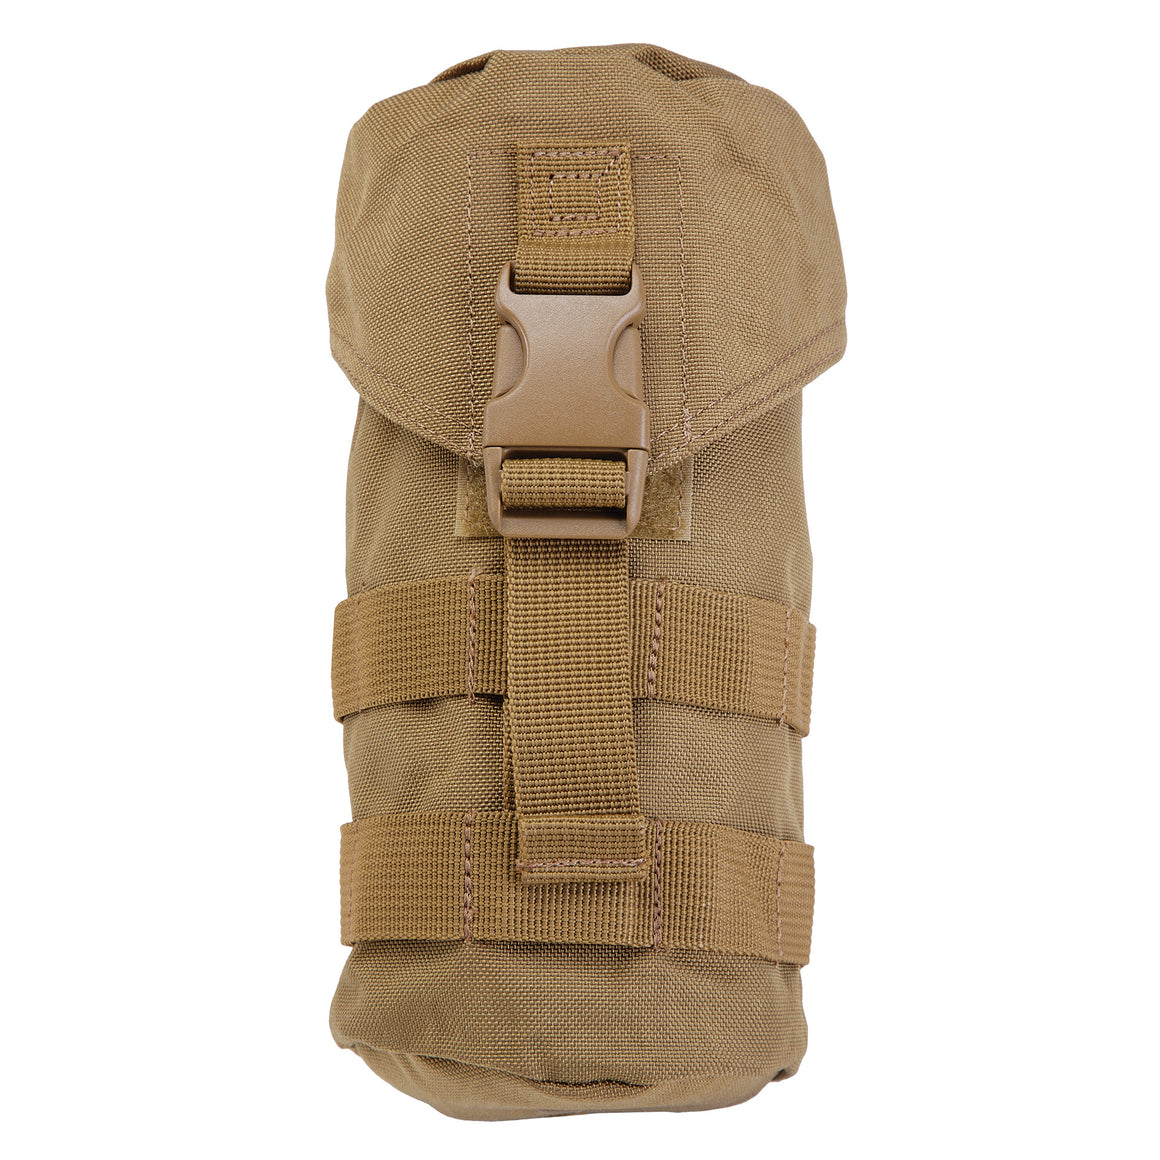 5.11 H2O carrier pouch, 5.11 H2O carrier pouch